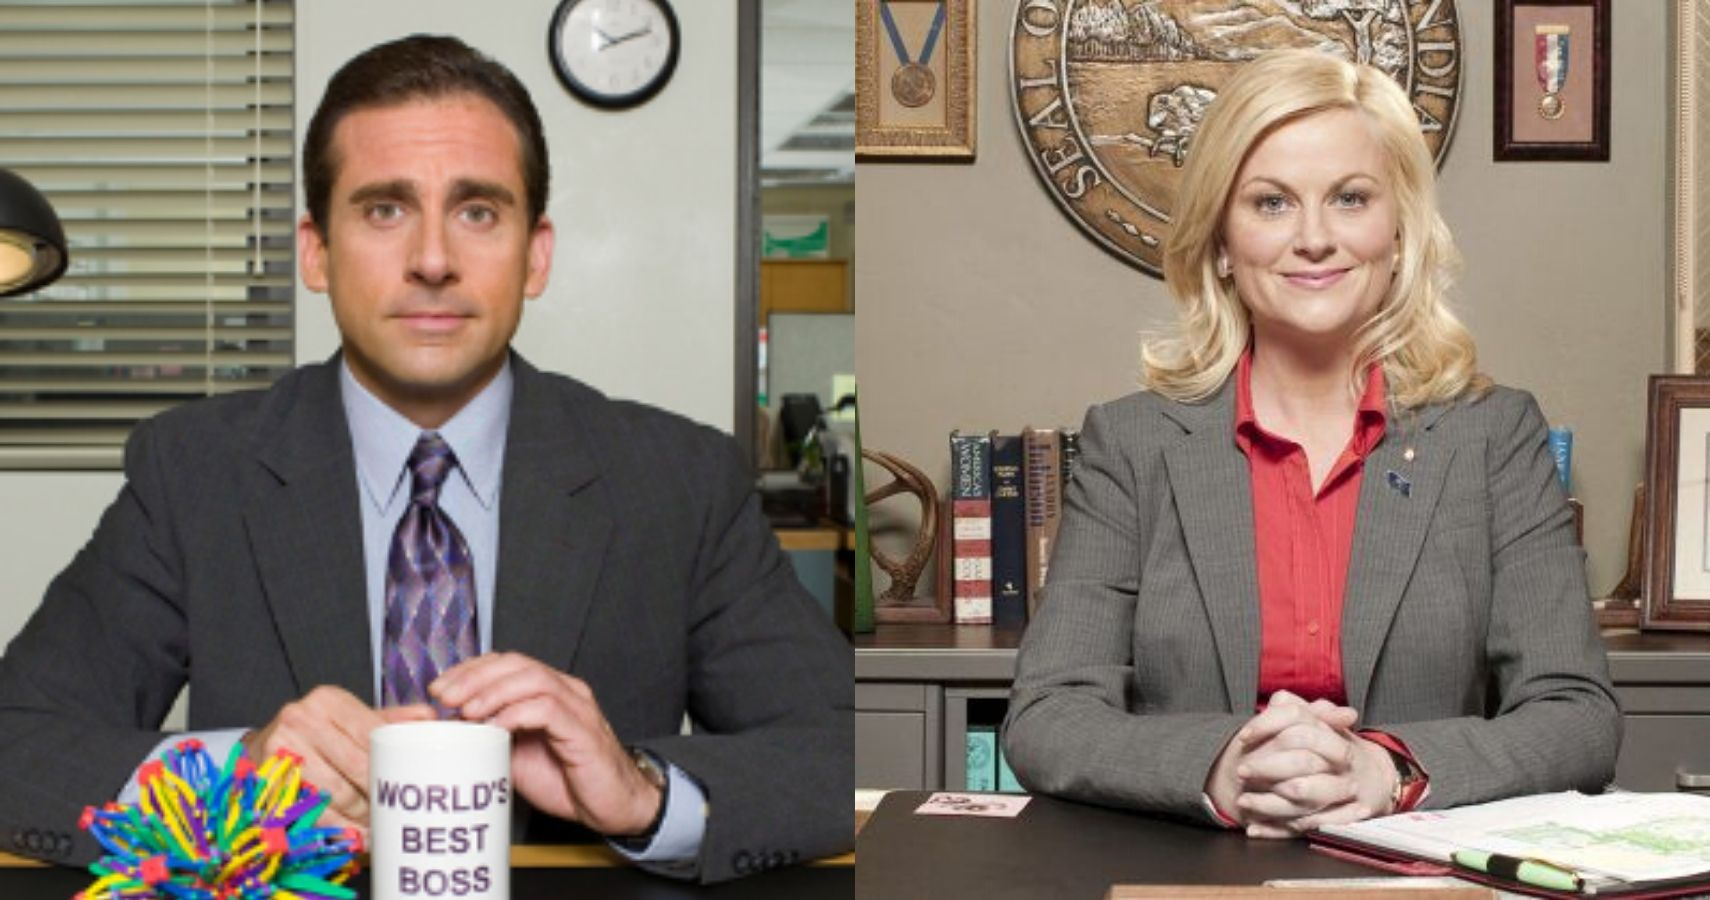 Parks & Rec Vs Dundler Mifflin: 5 Reasons Leslie Knope Is The World's Greatest Boss (& 5 Reasons It's Michael Scott)